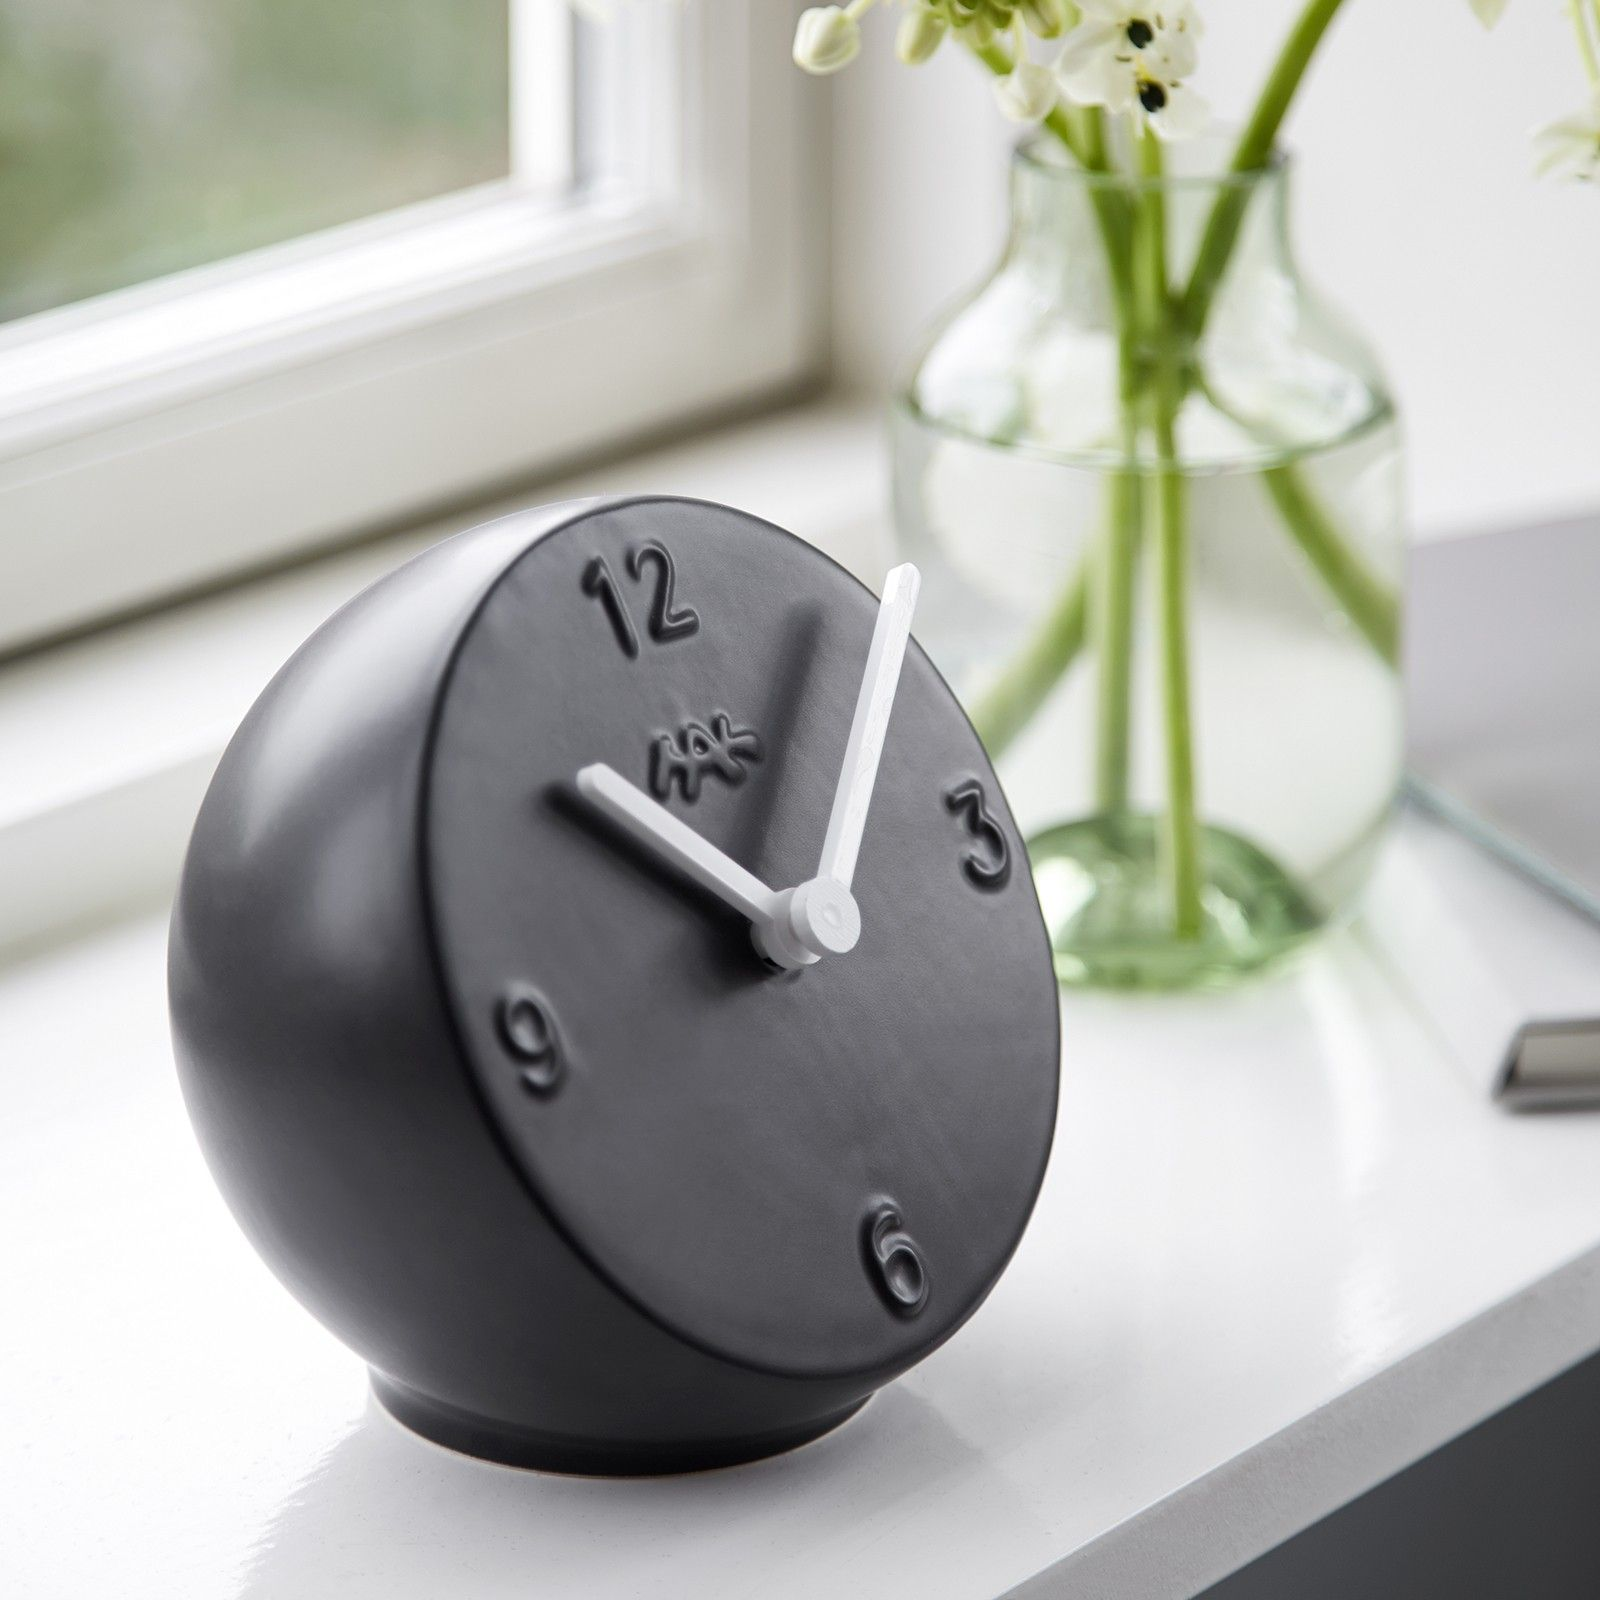 The small Ora table clock has inherited its stringent and stylish look from the popular wall clocks from Kähler in the same series, but this design gem surprises with its shape and volume.